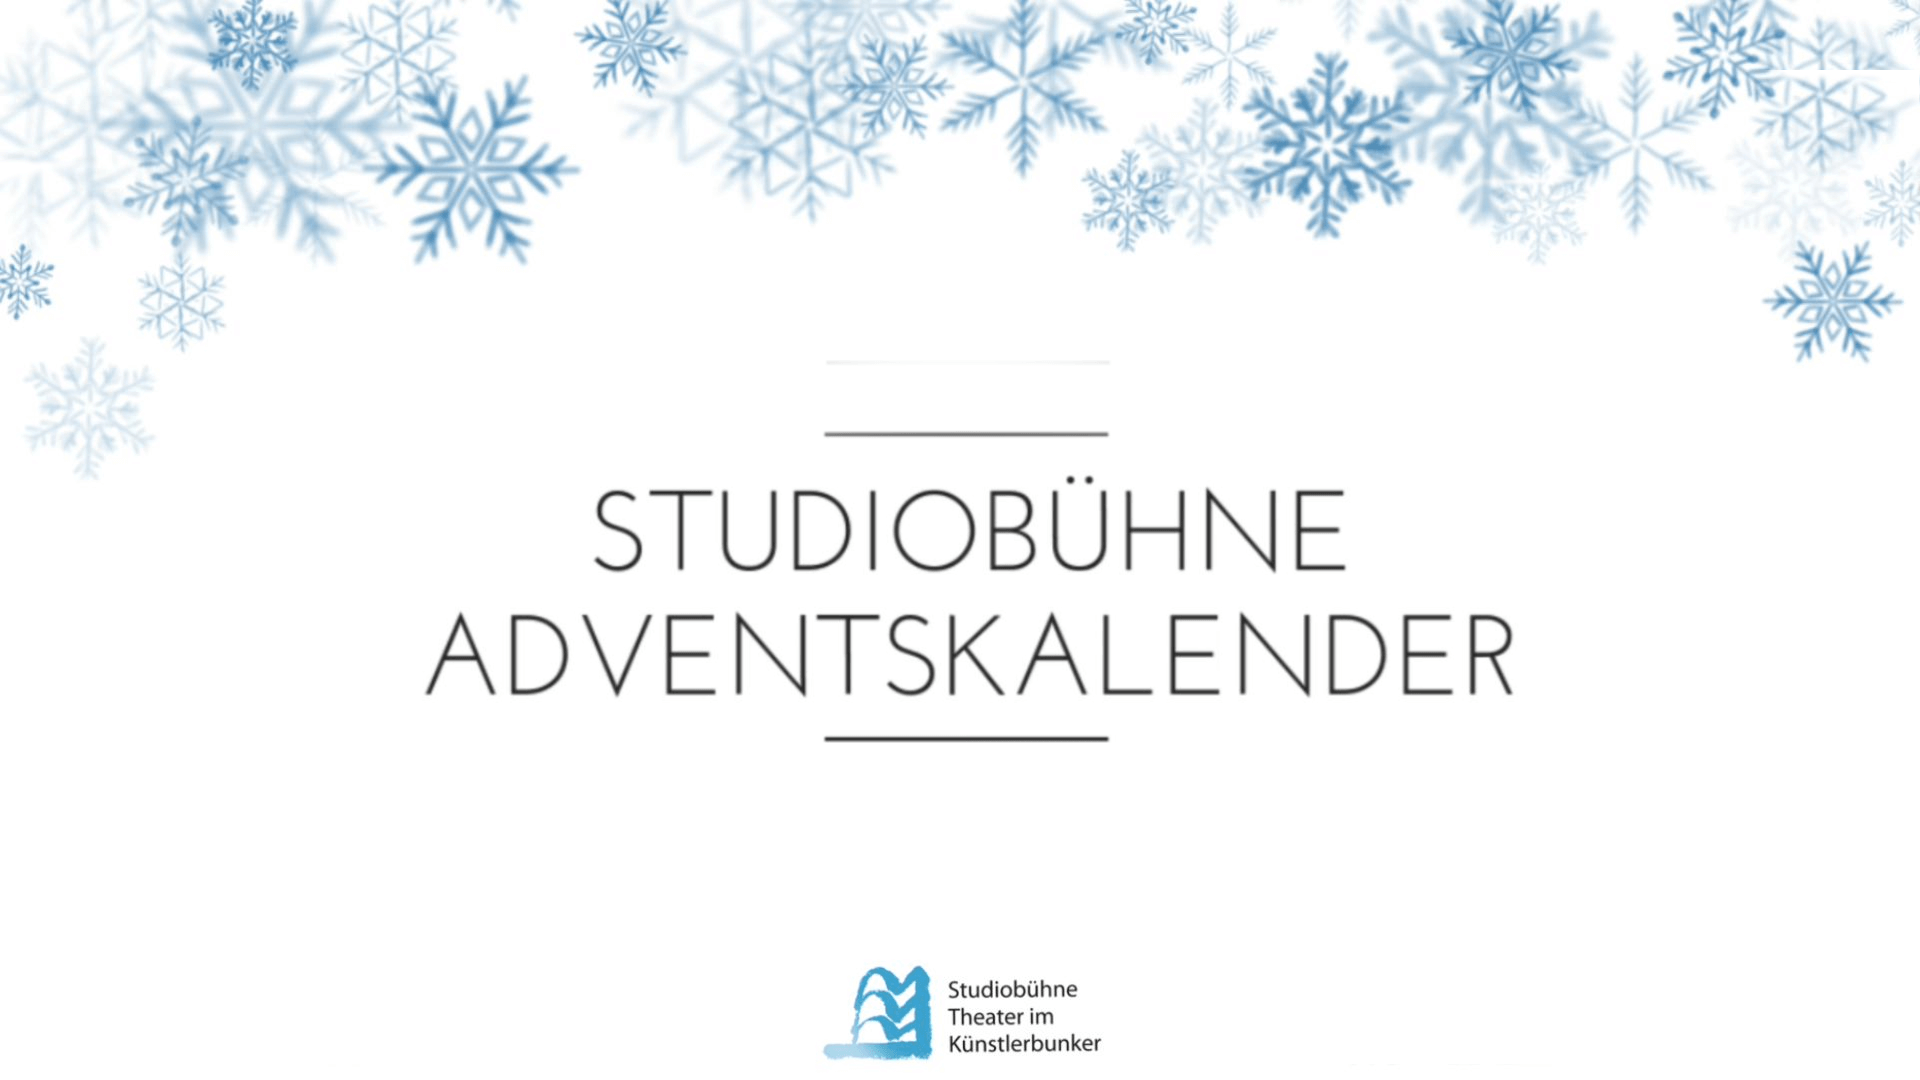 Studiobühne Adventskalender